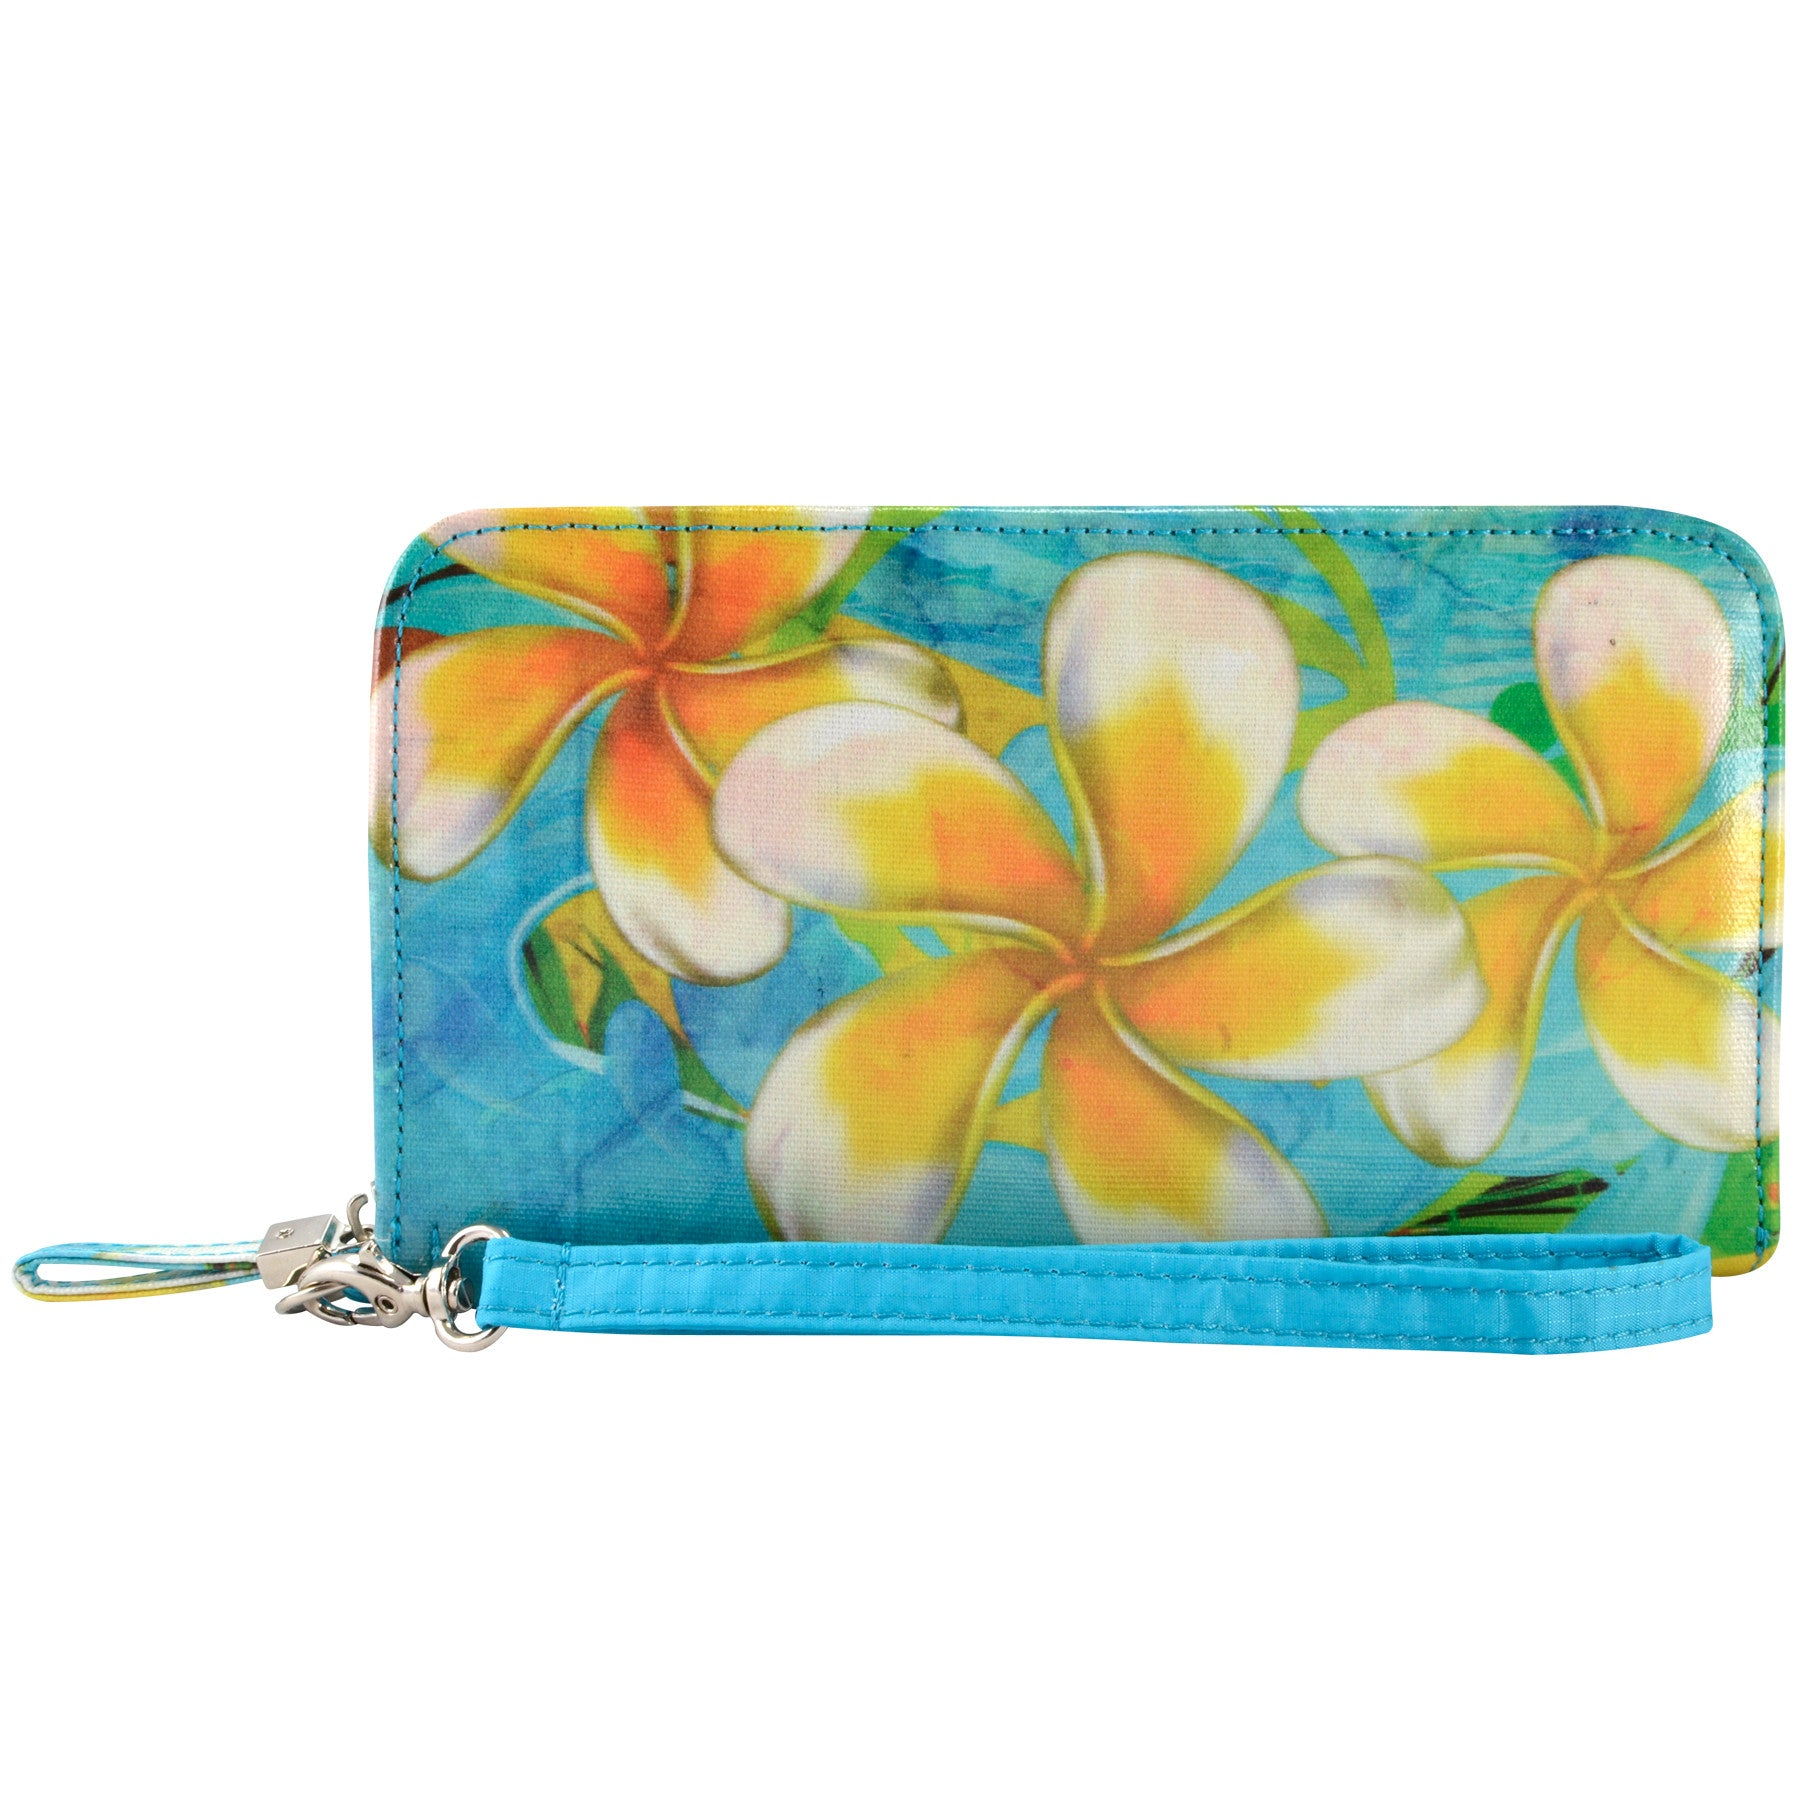 Alicia Klein vegan womens wallet, Plumeria